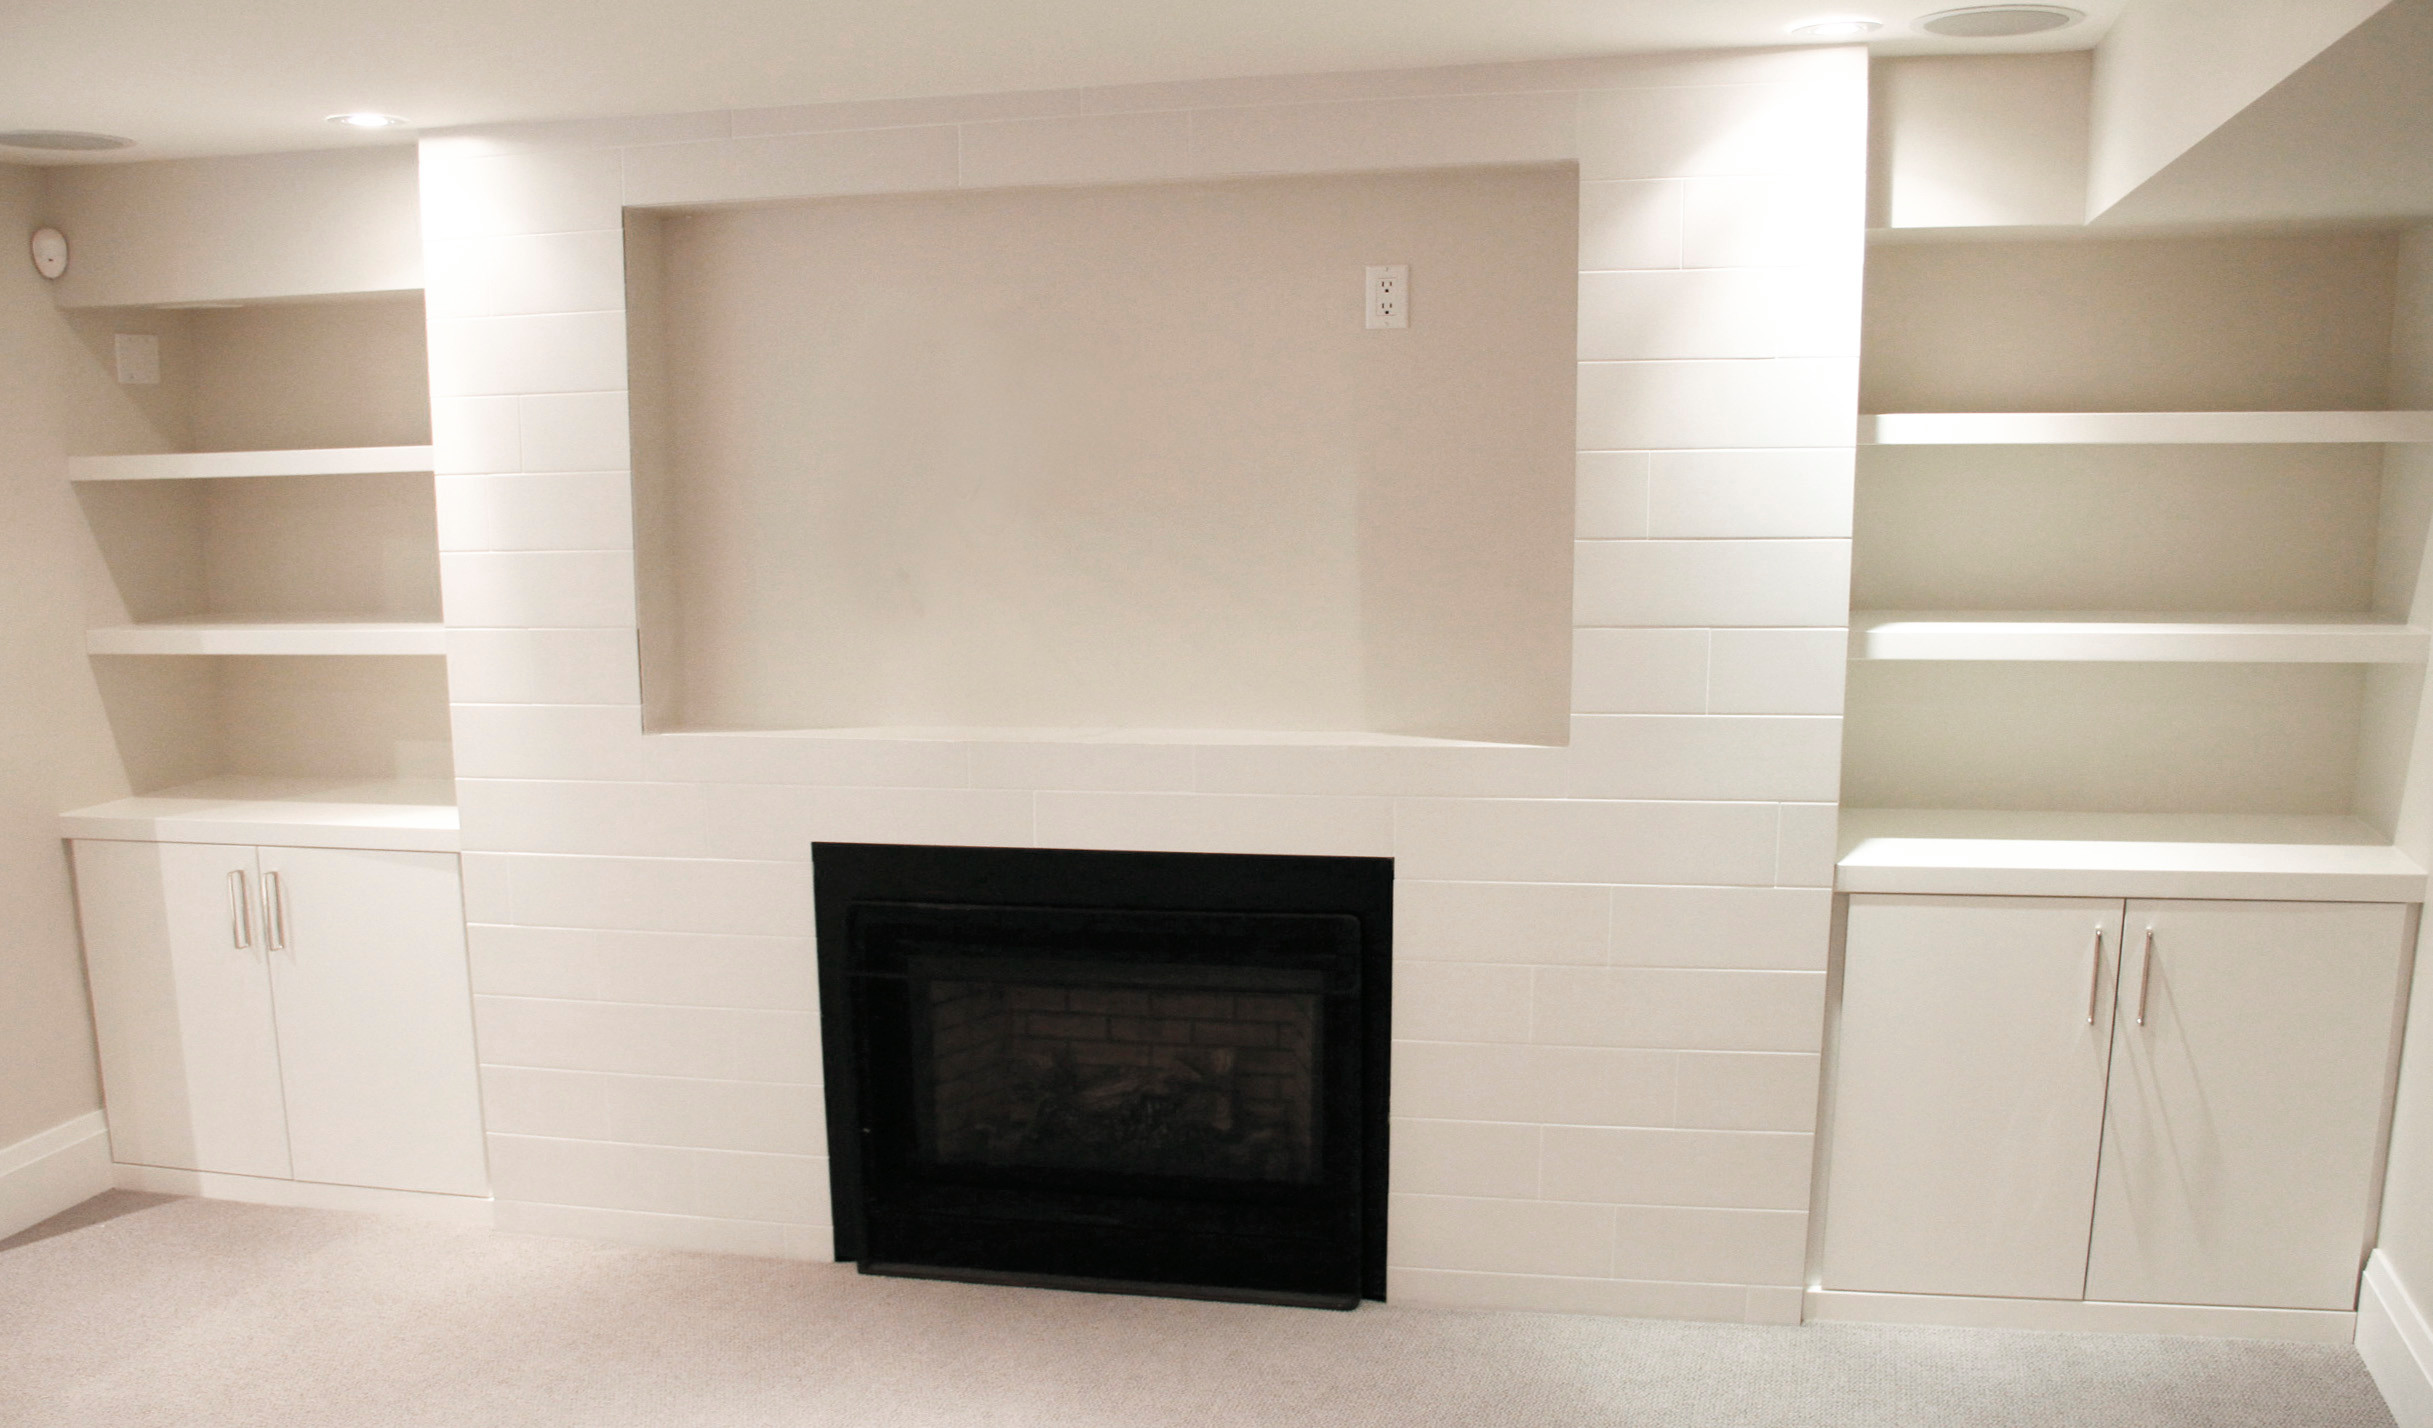 Basement/ Family Room Built-in Cabinetry and Banquette